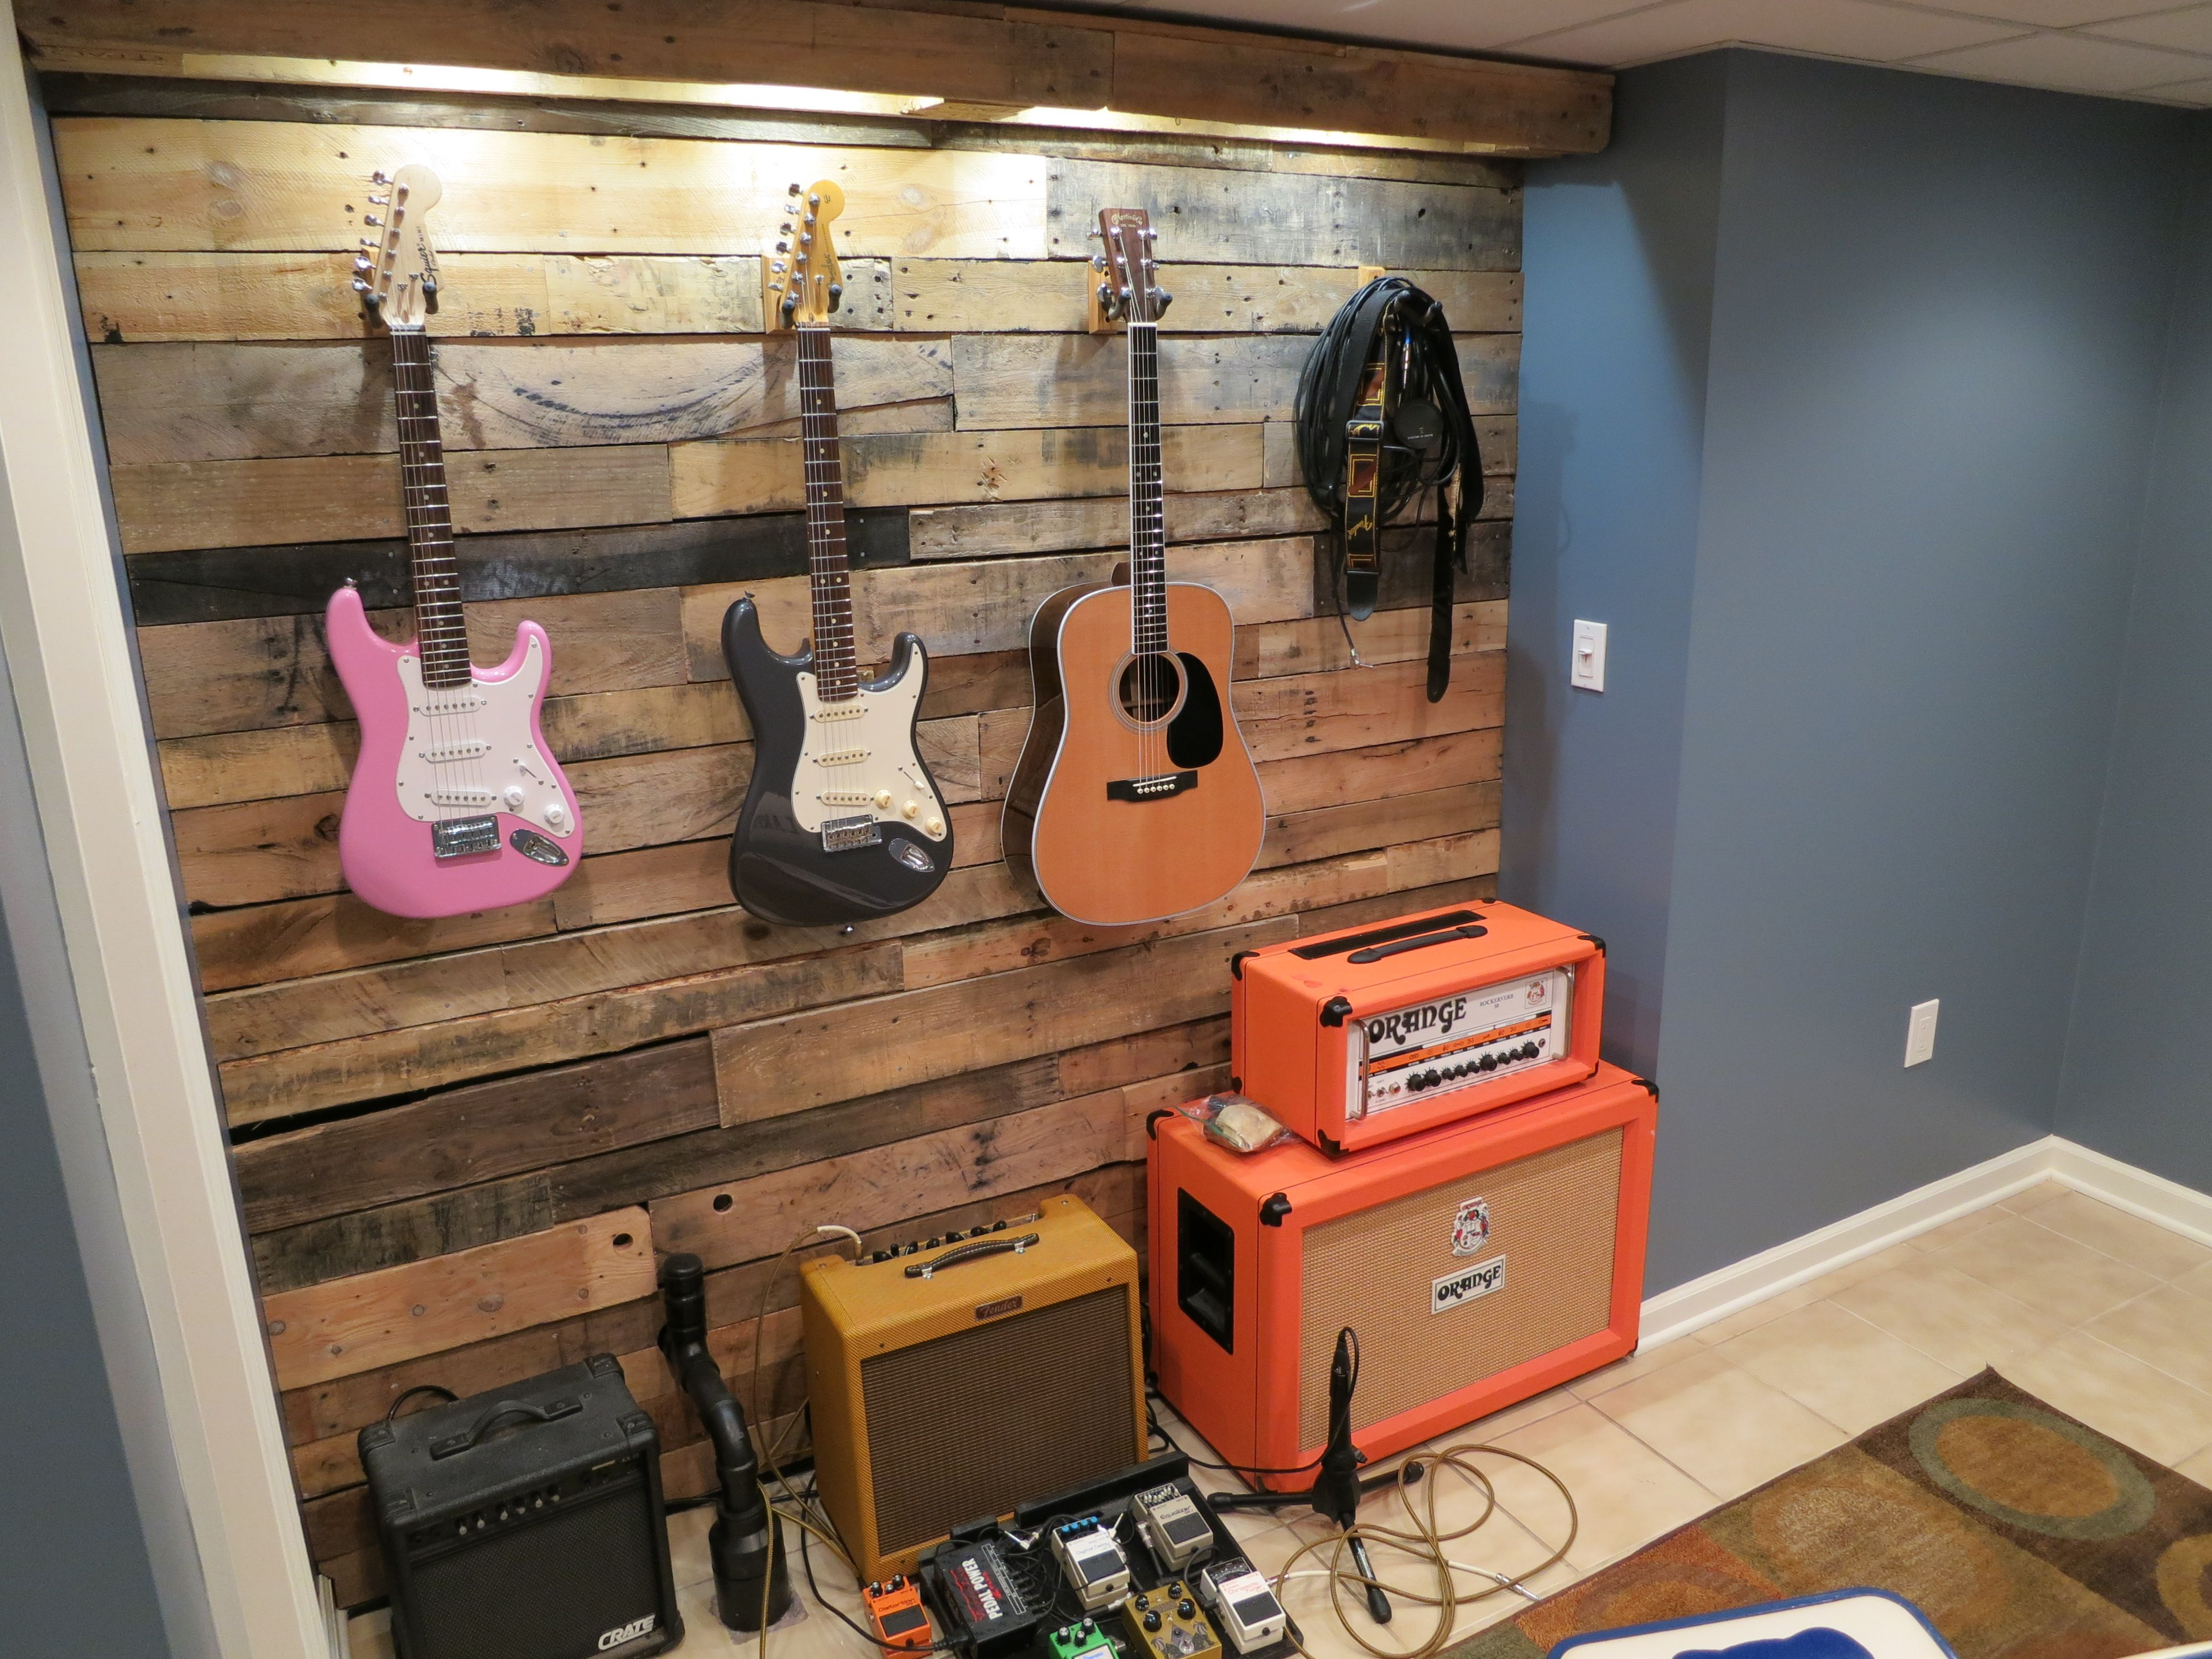 Recycled pallet wood to hang guitars and build light box string